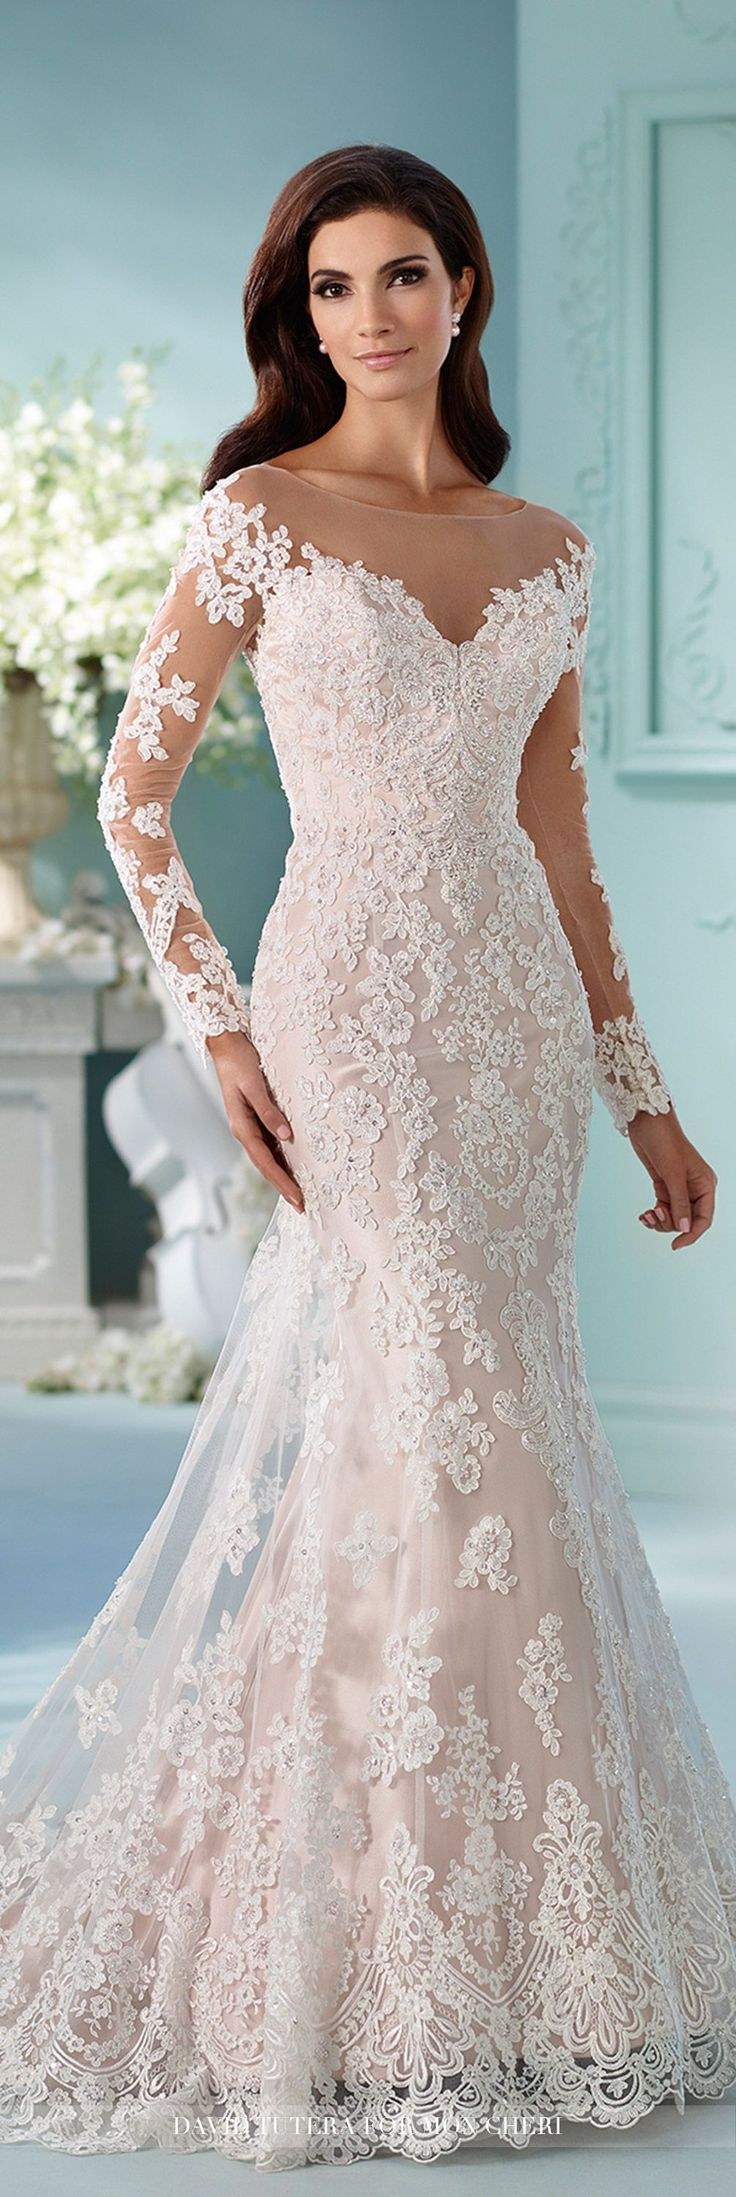 Best 25 wedding dress bolero ideas on pinterest lace for Best lace wedding dresses